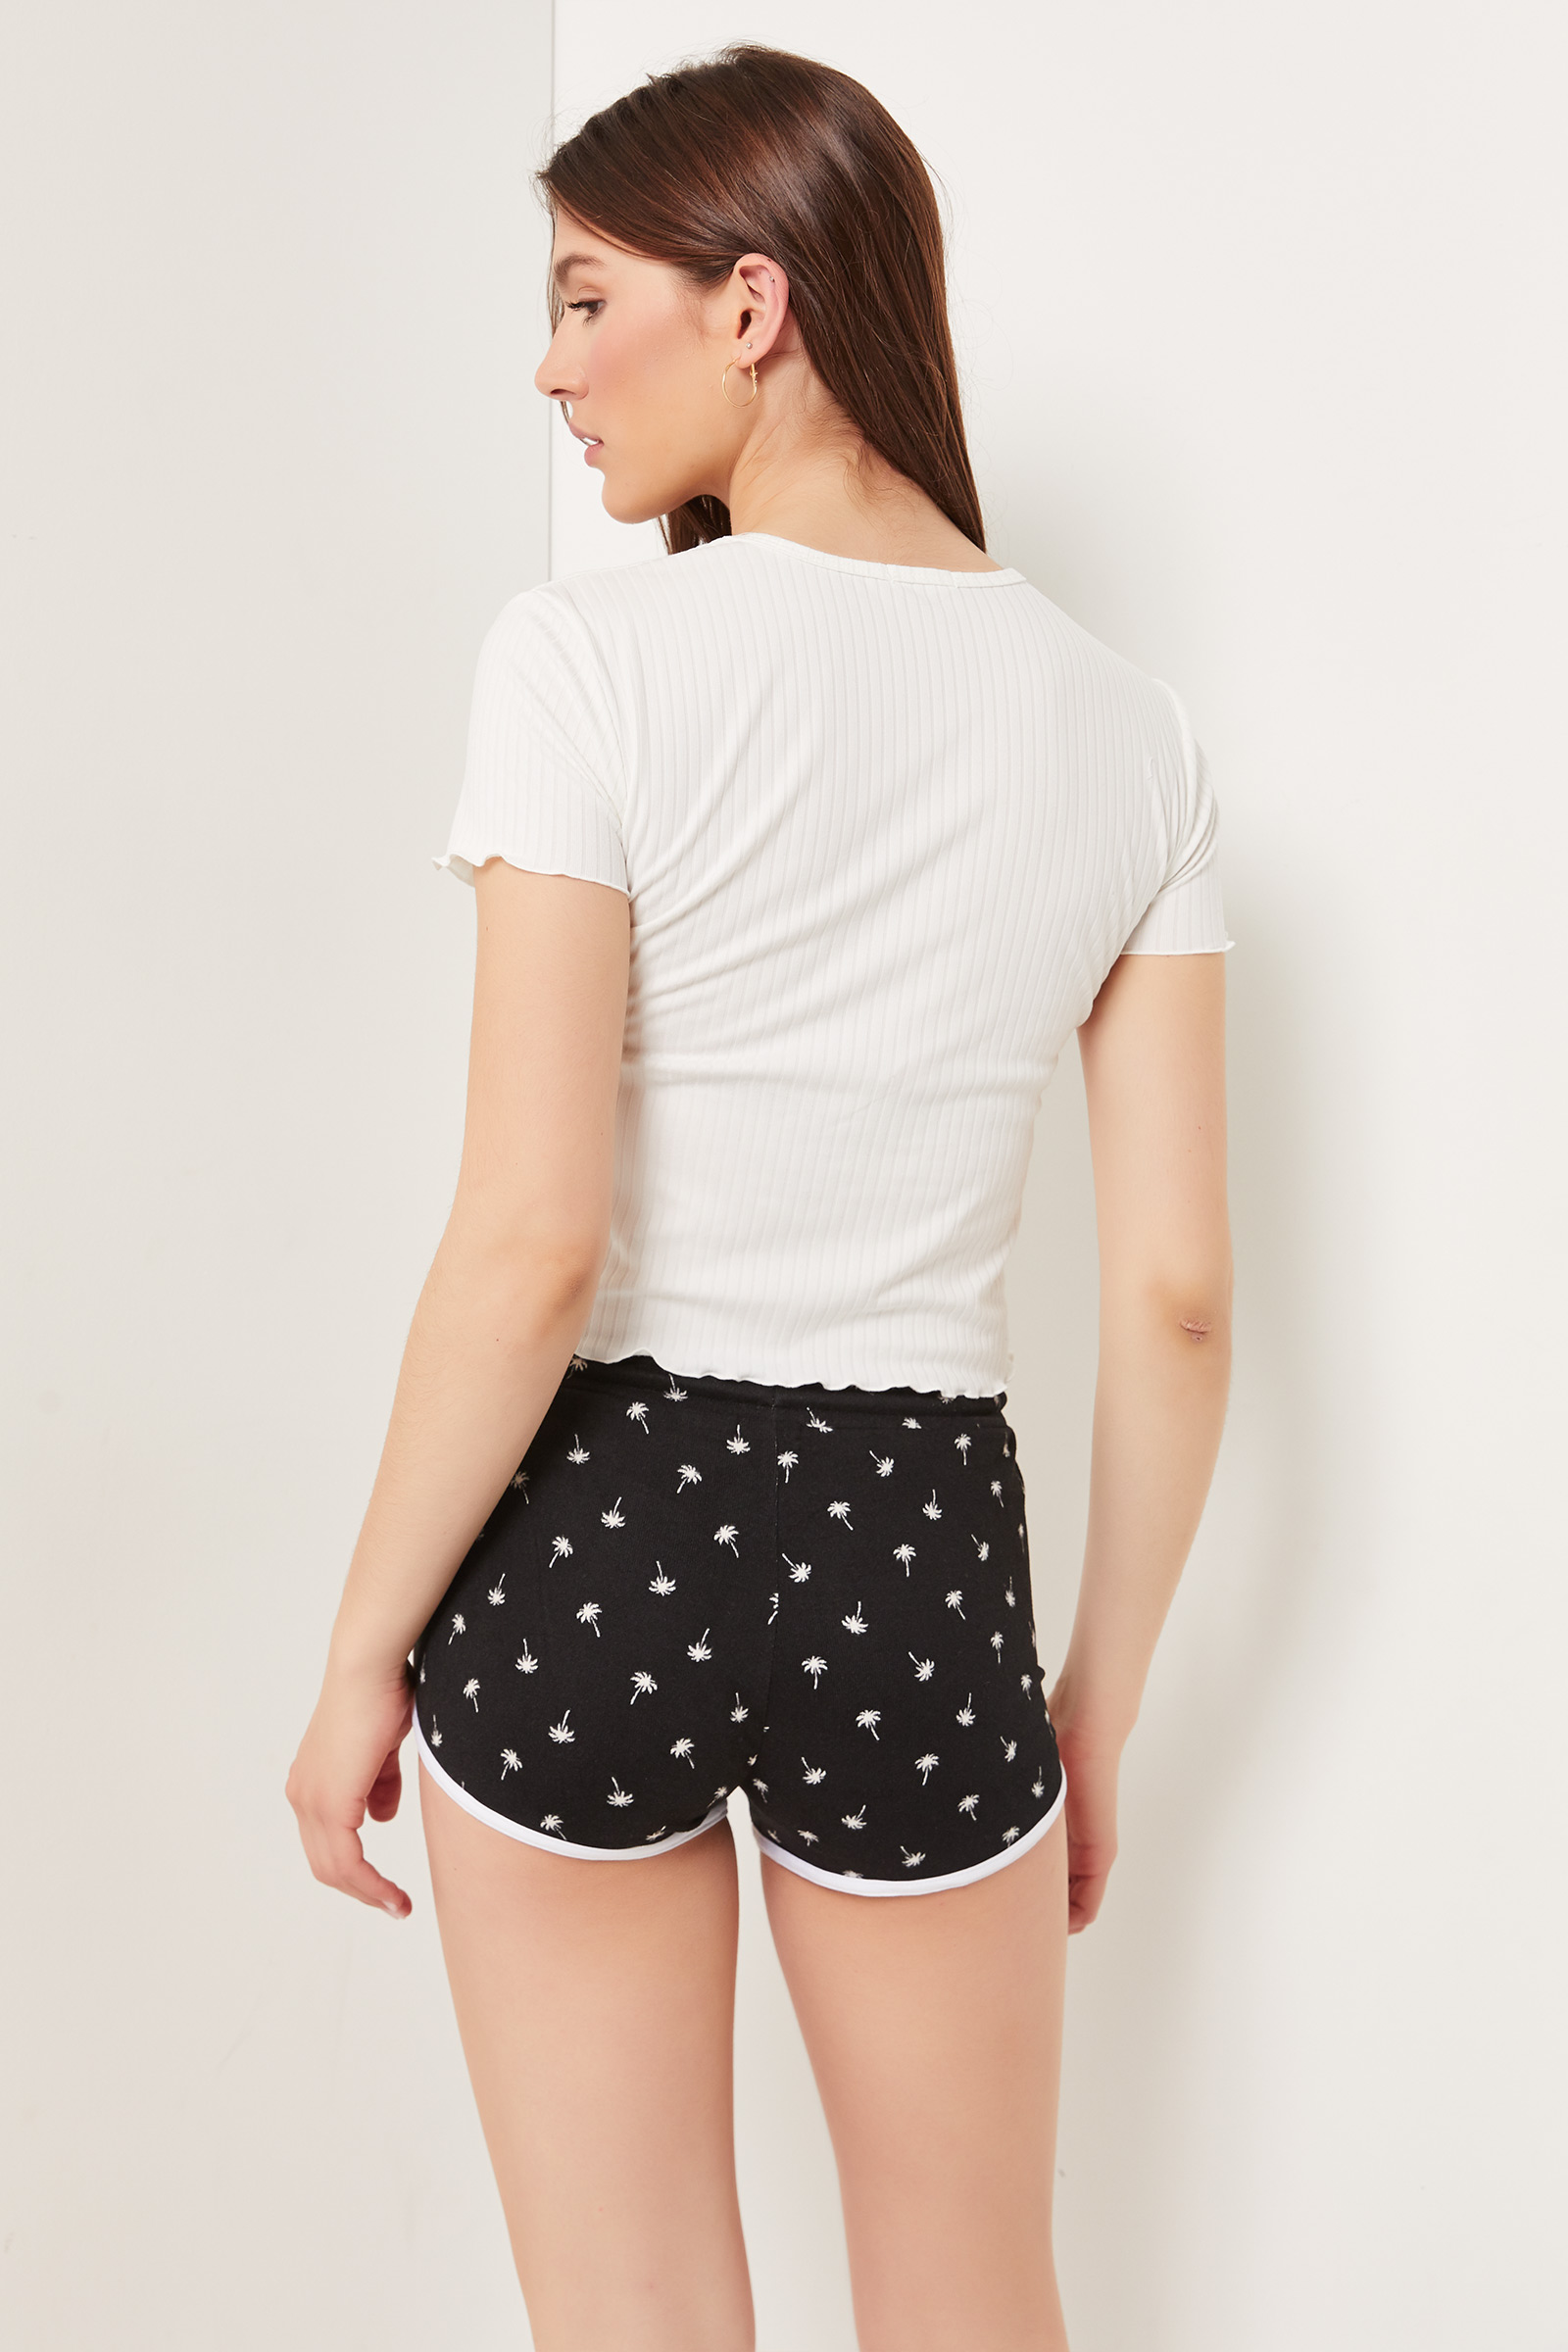 Deluxe Palm Tree Lounge Shorts